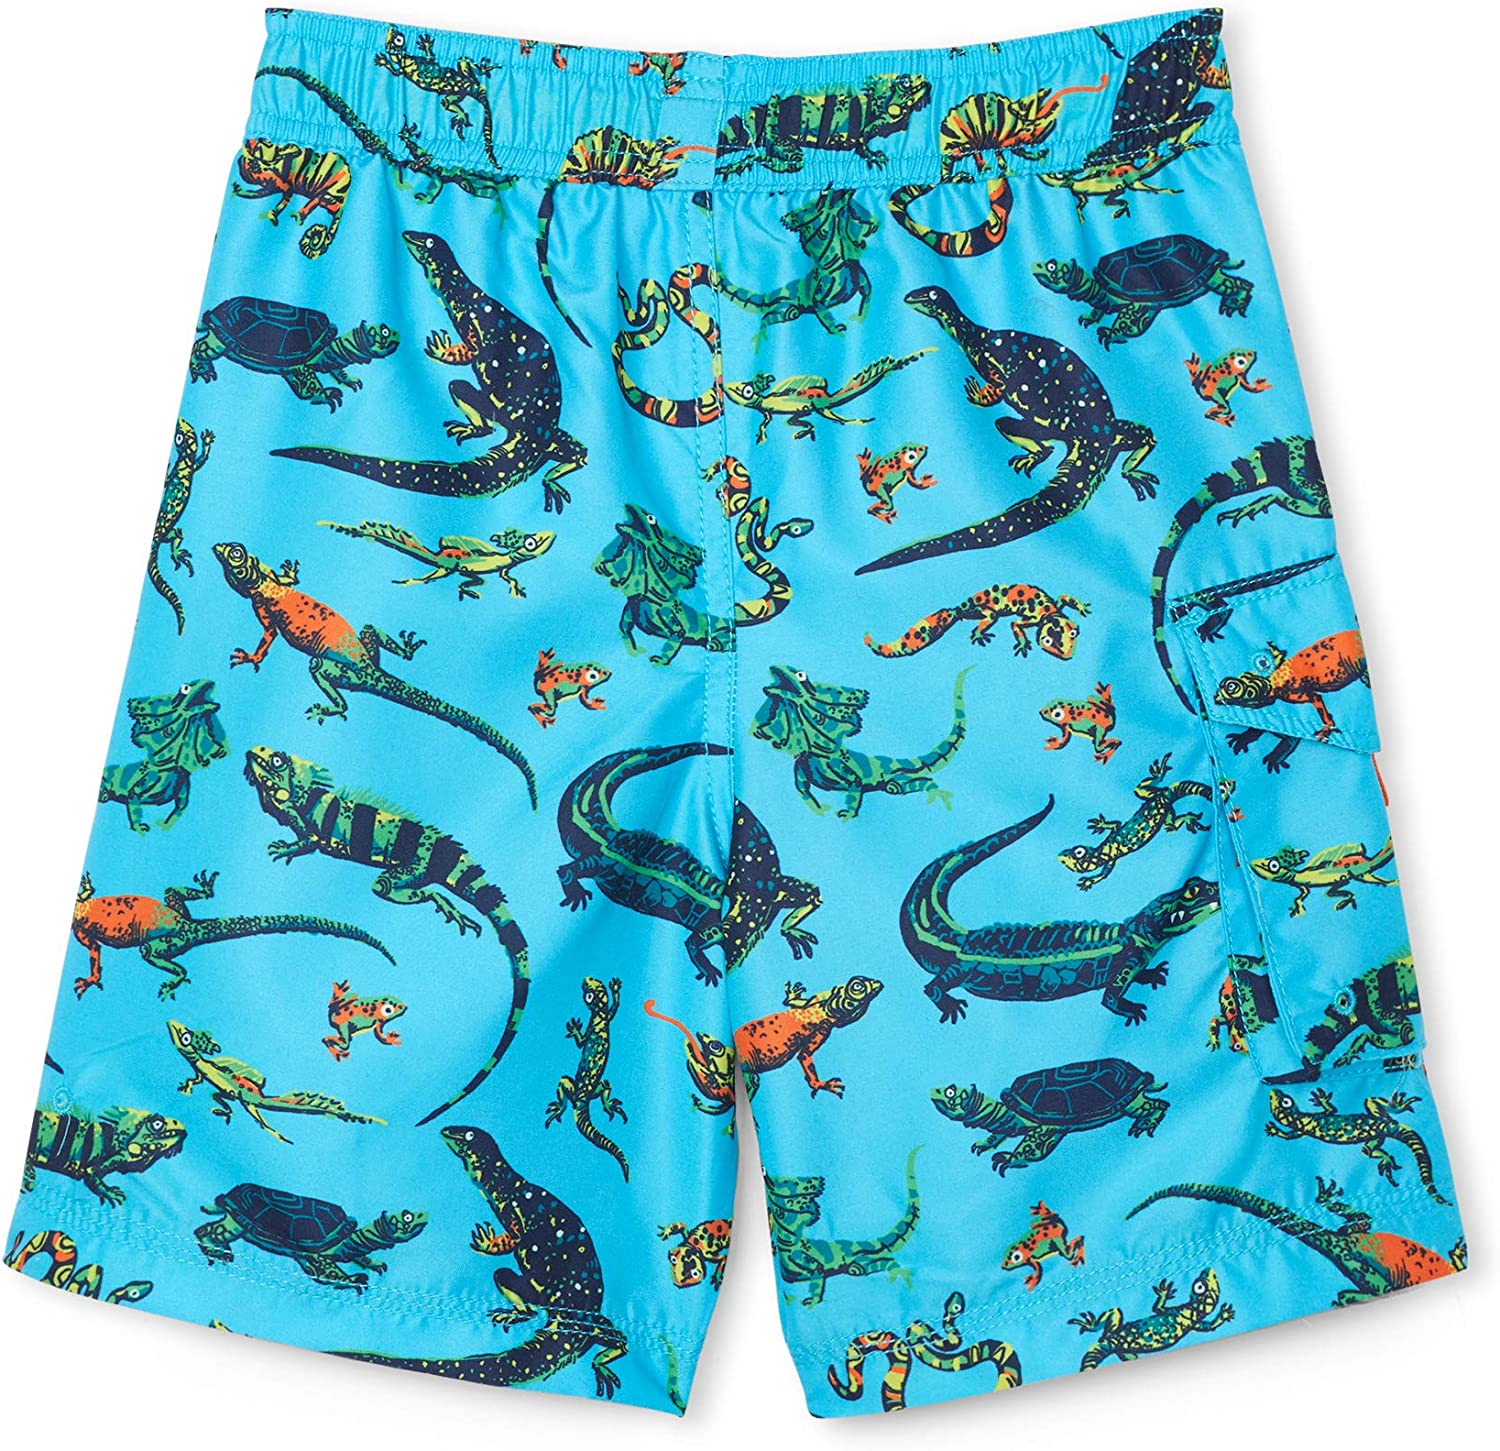 Hatley Boys Board Shorts